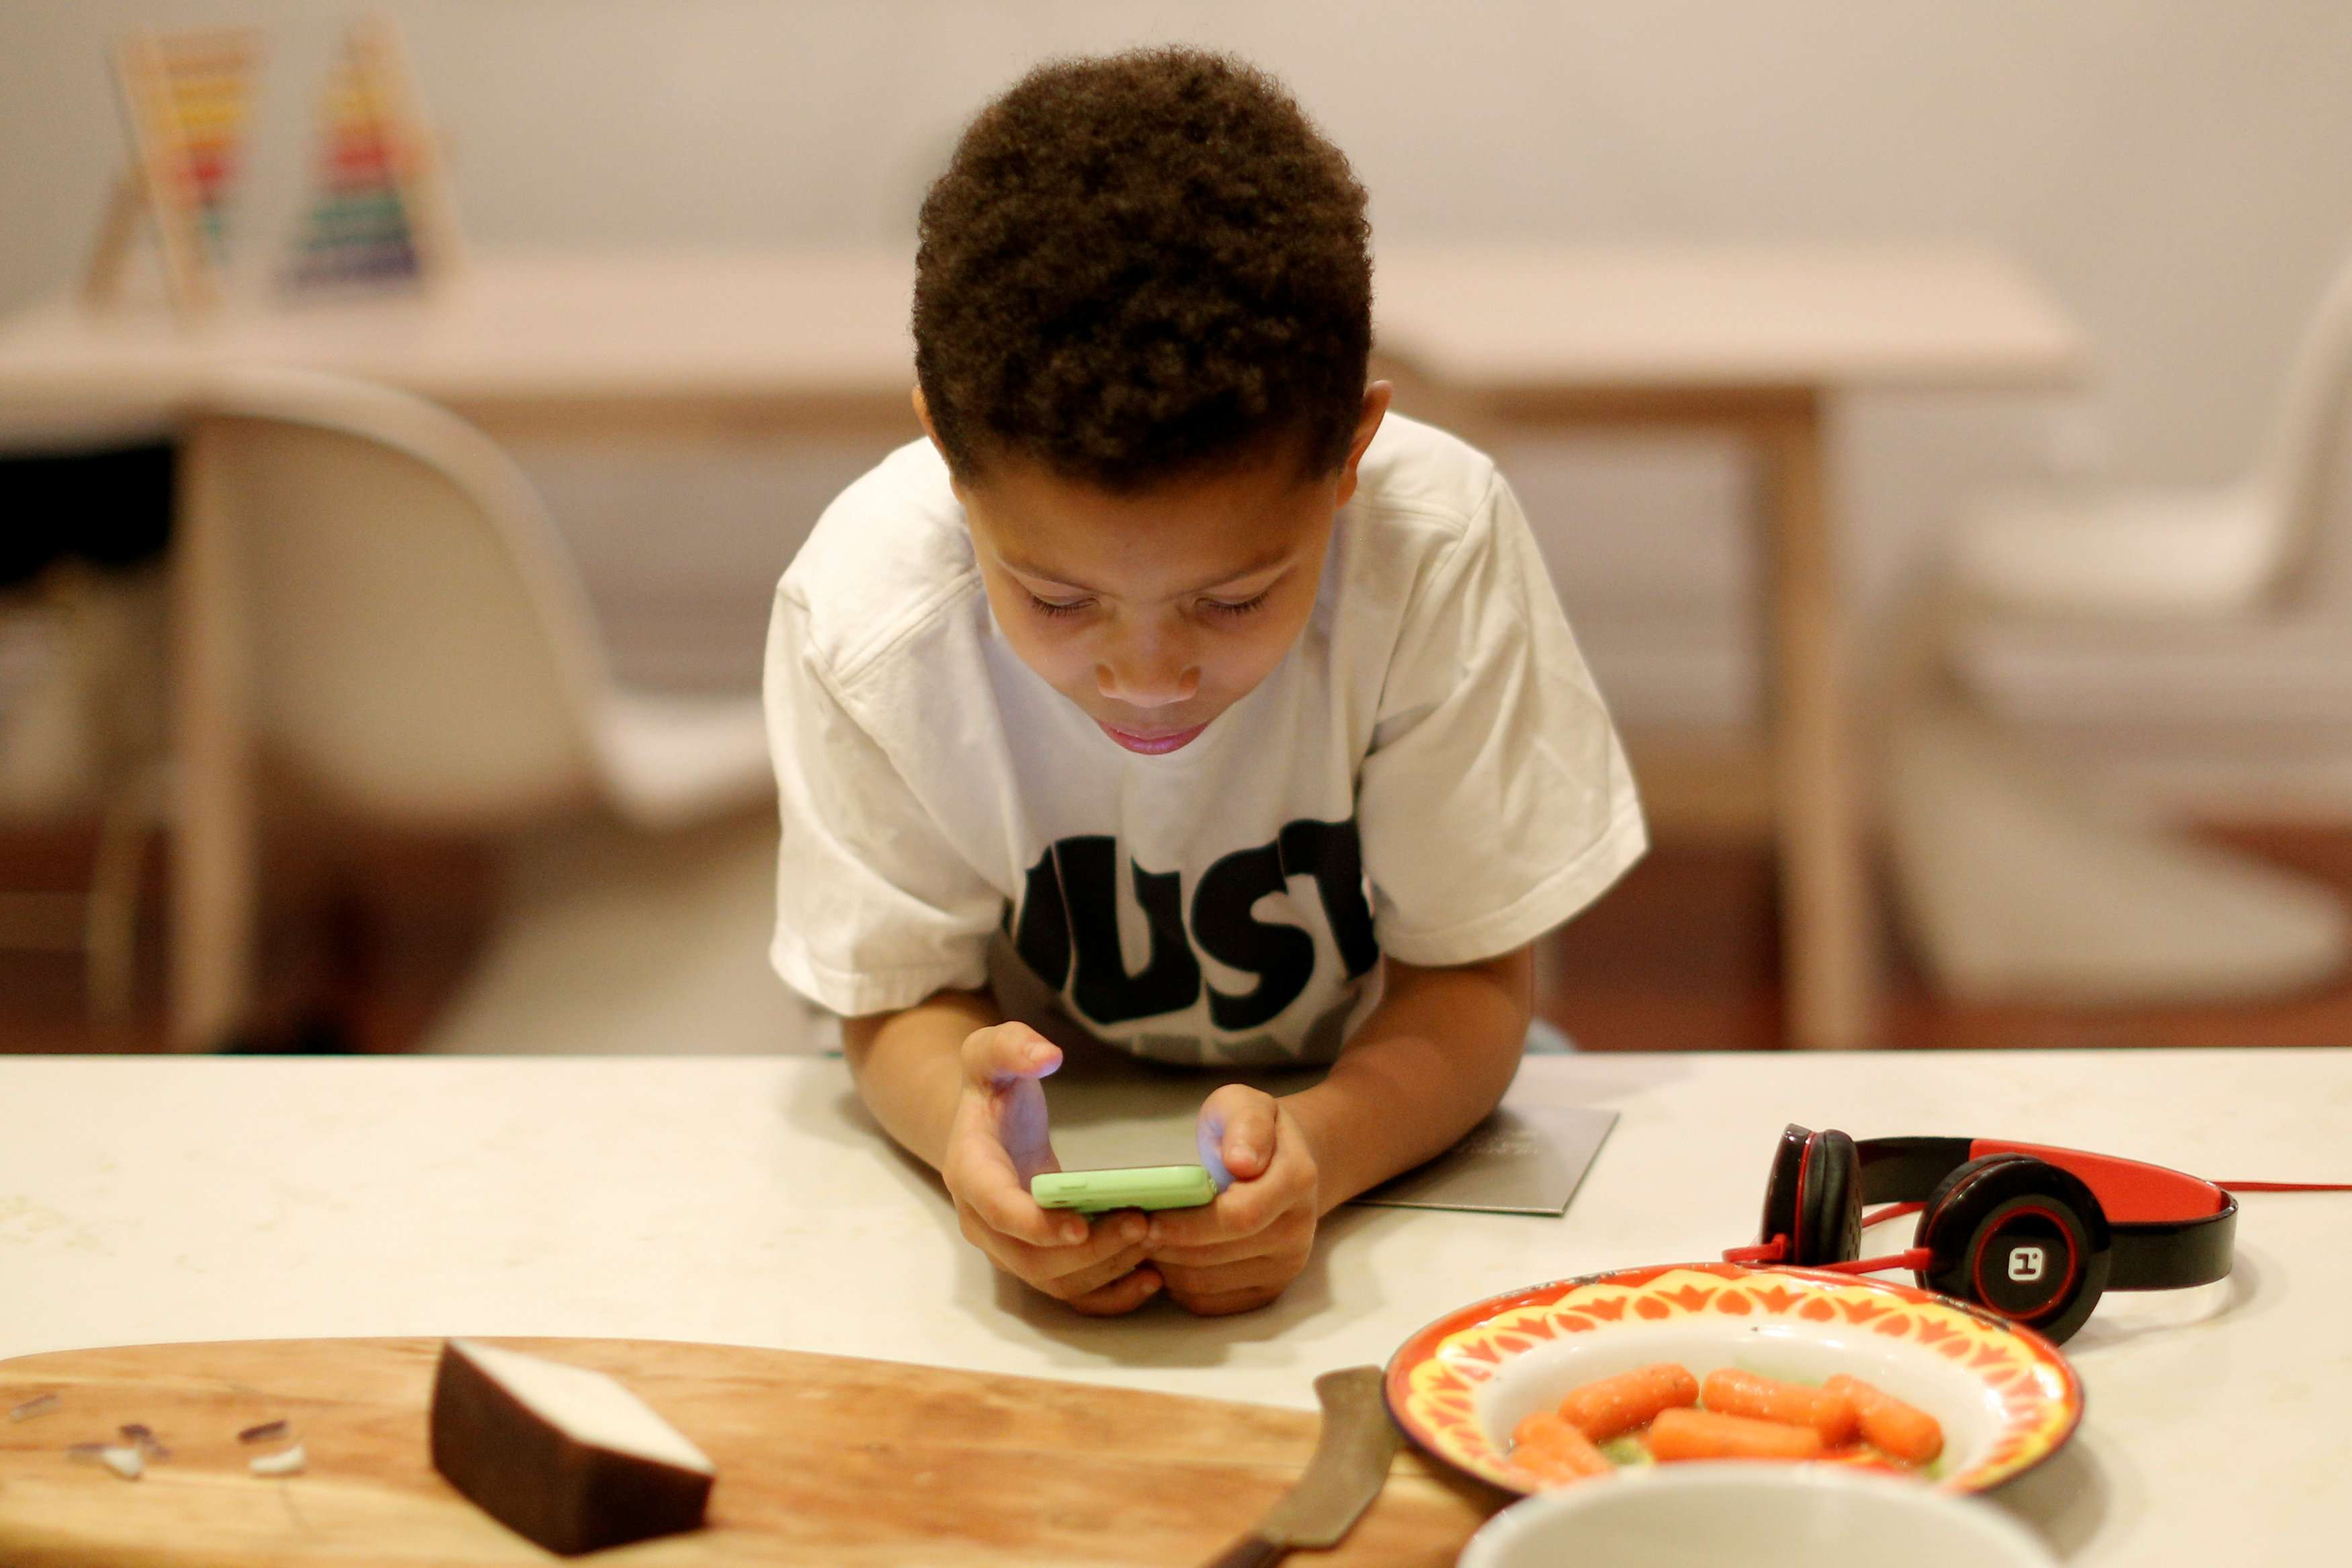 A challenge to parents. A little boy plays a game on his phone. (Reuters)